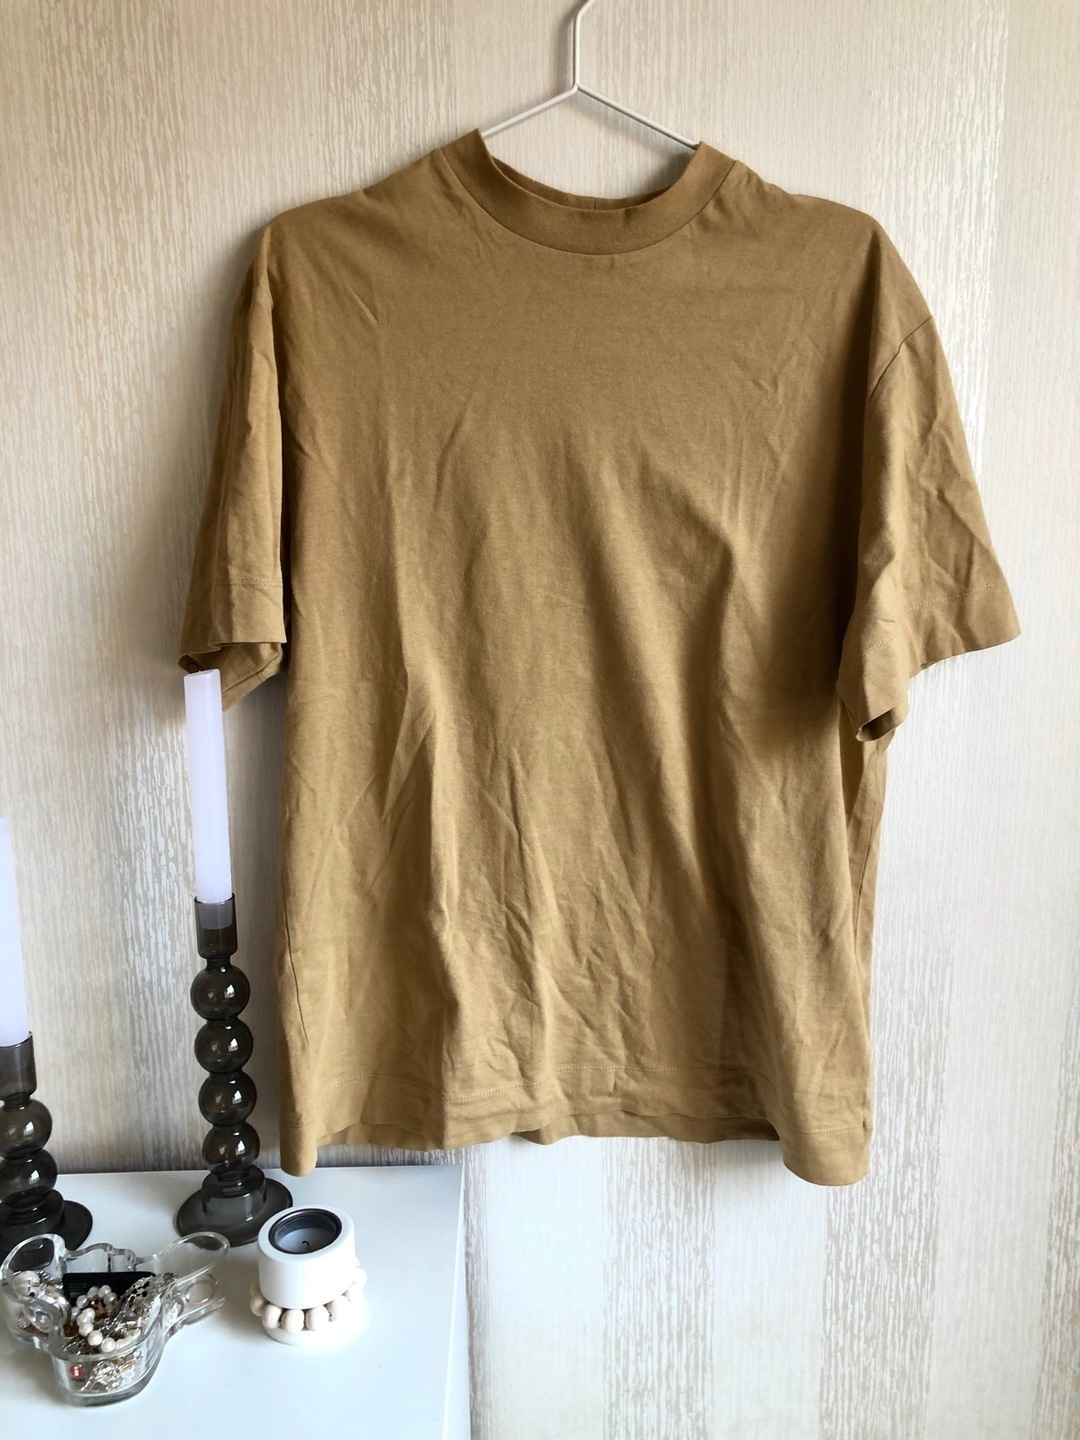 Women's tops & t-shirts - COLLUSION photo 1